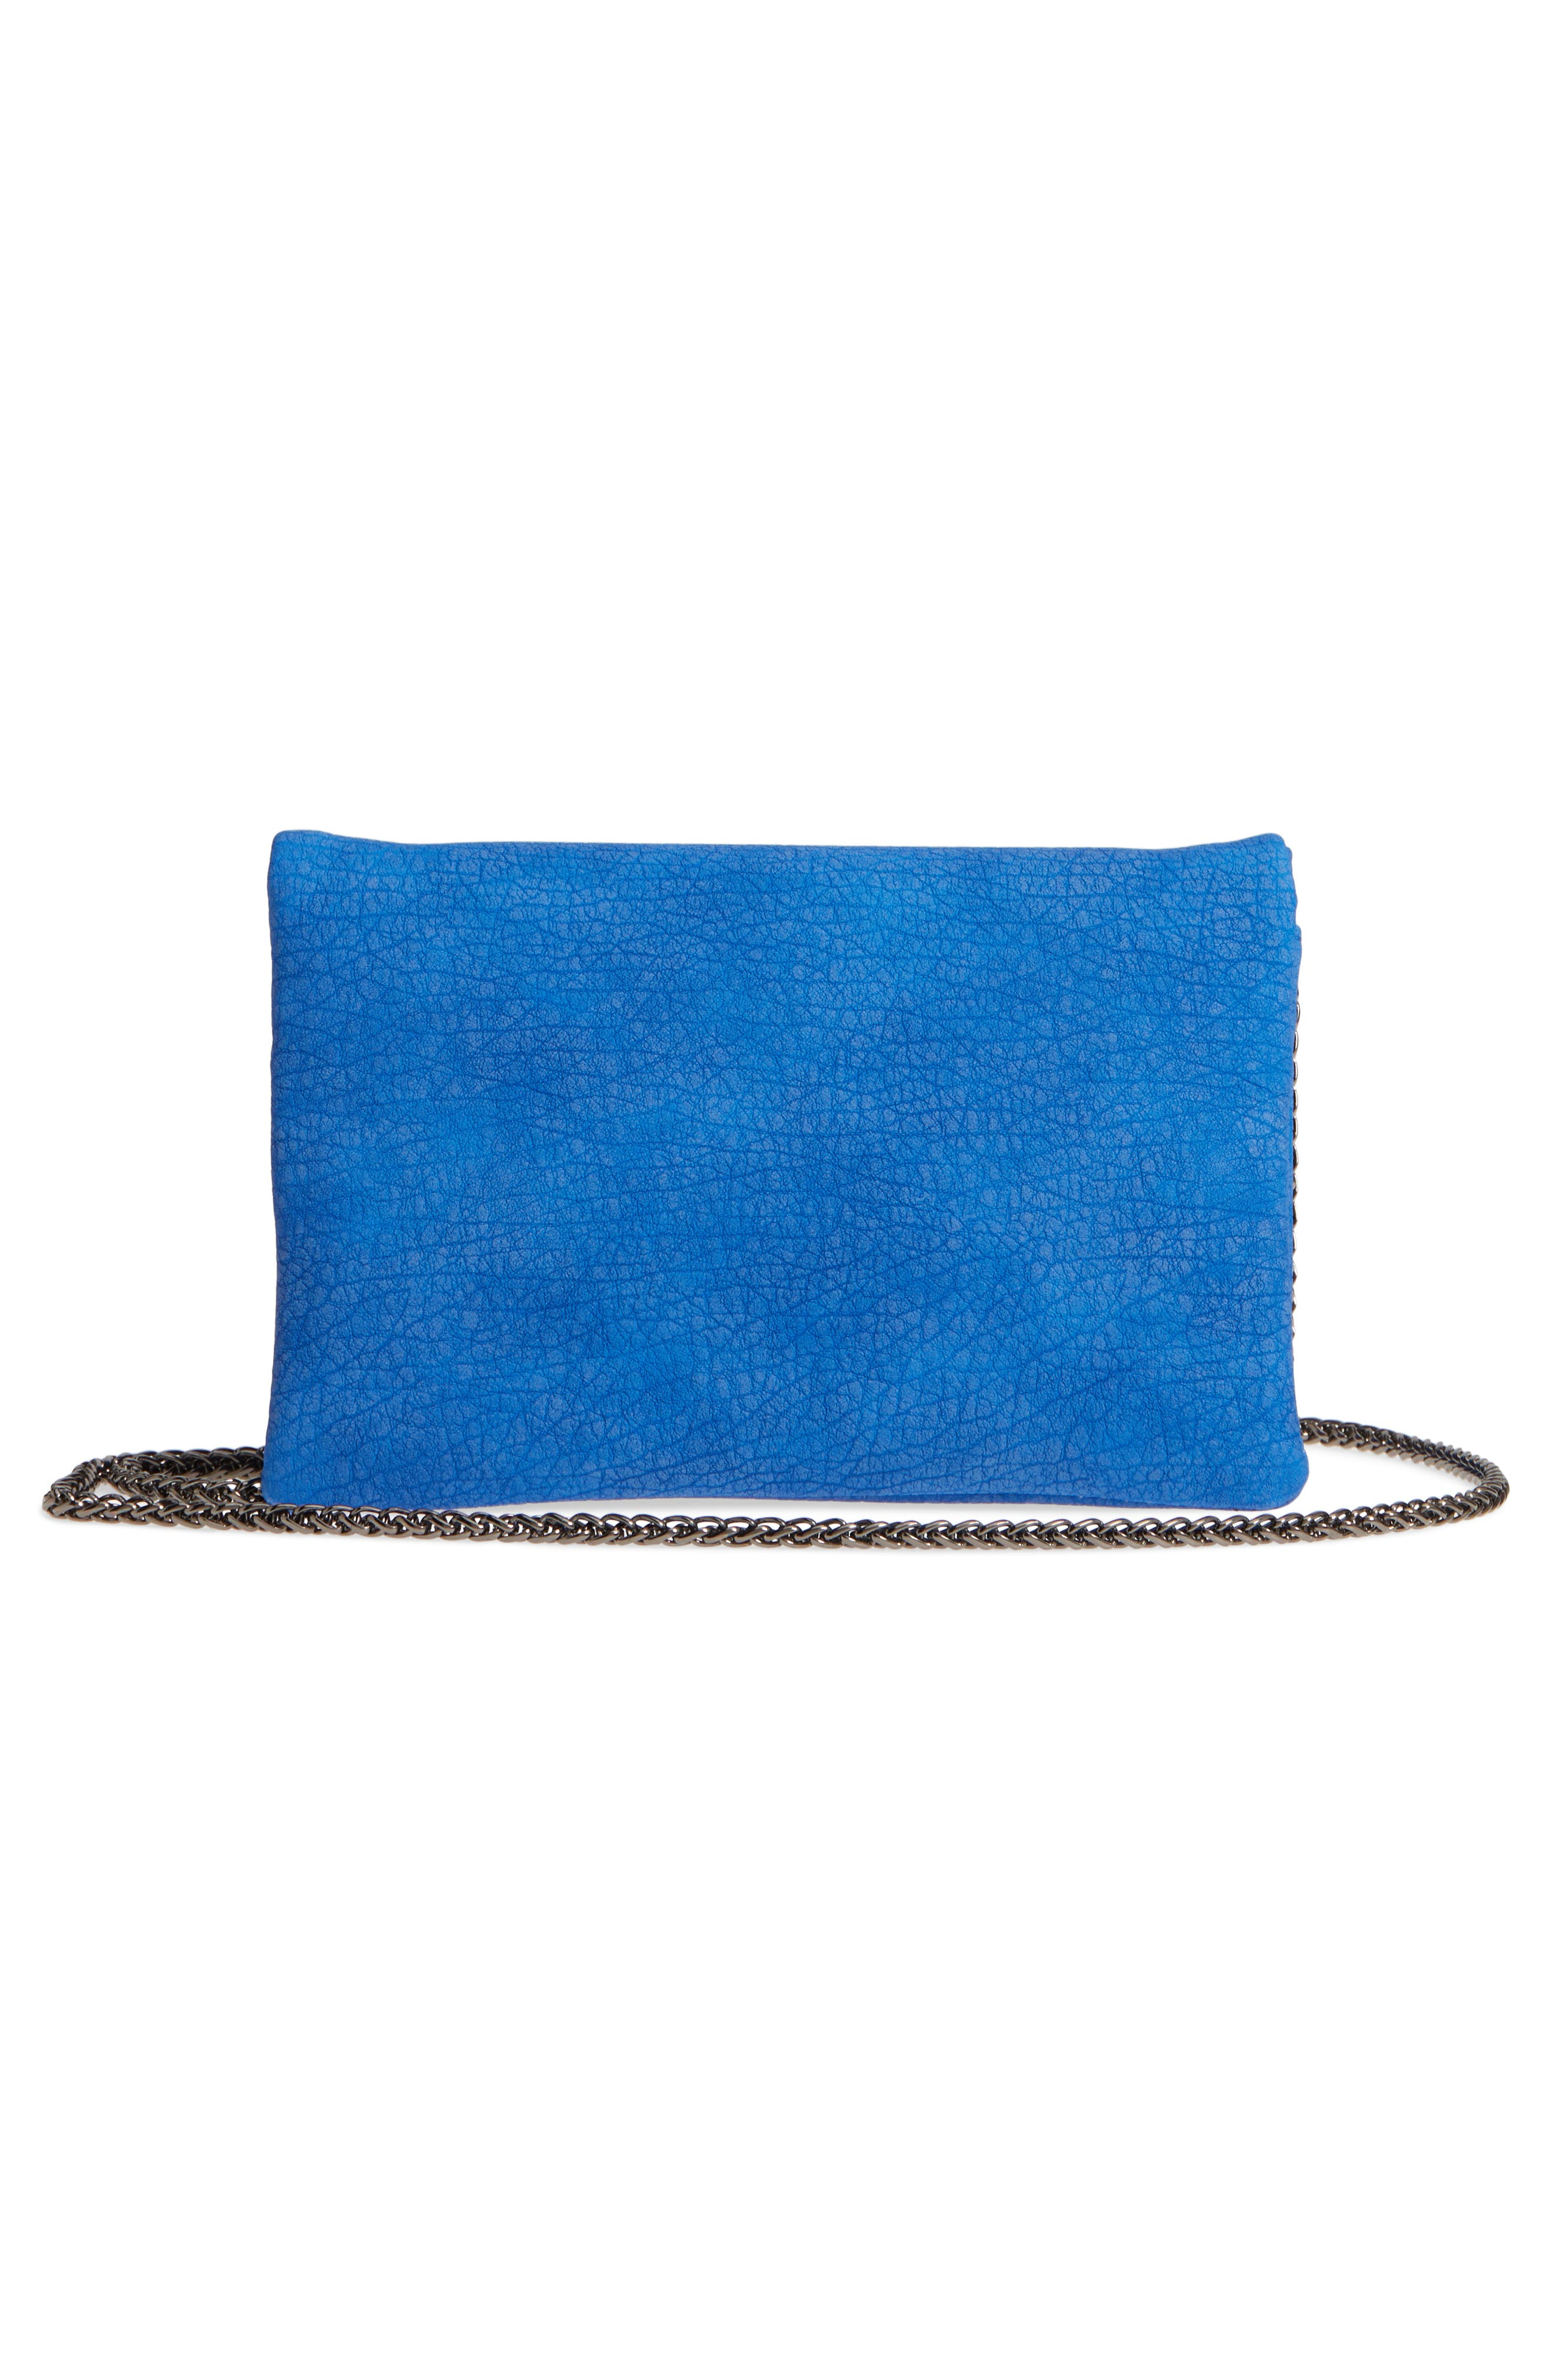 Studded Faux Leather Clutch,                             Alternate thumbnail 5, color,